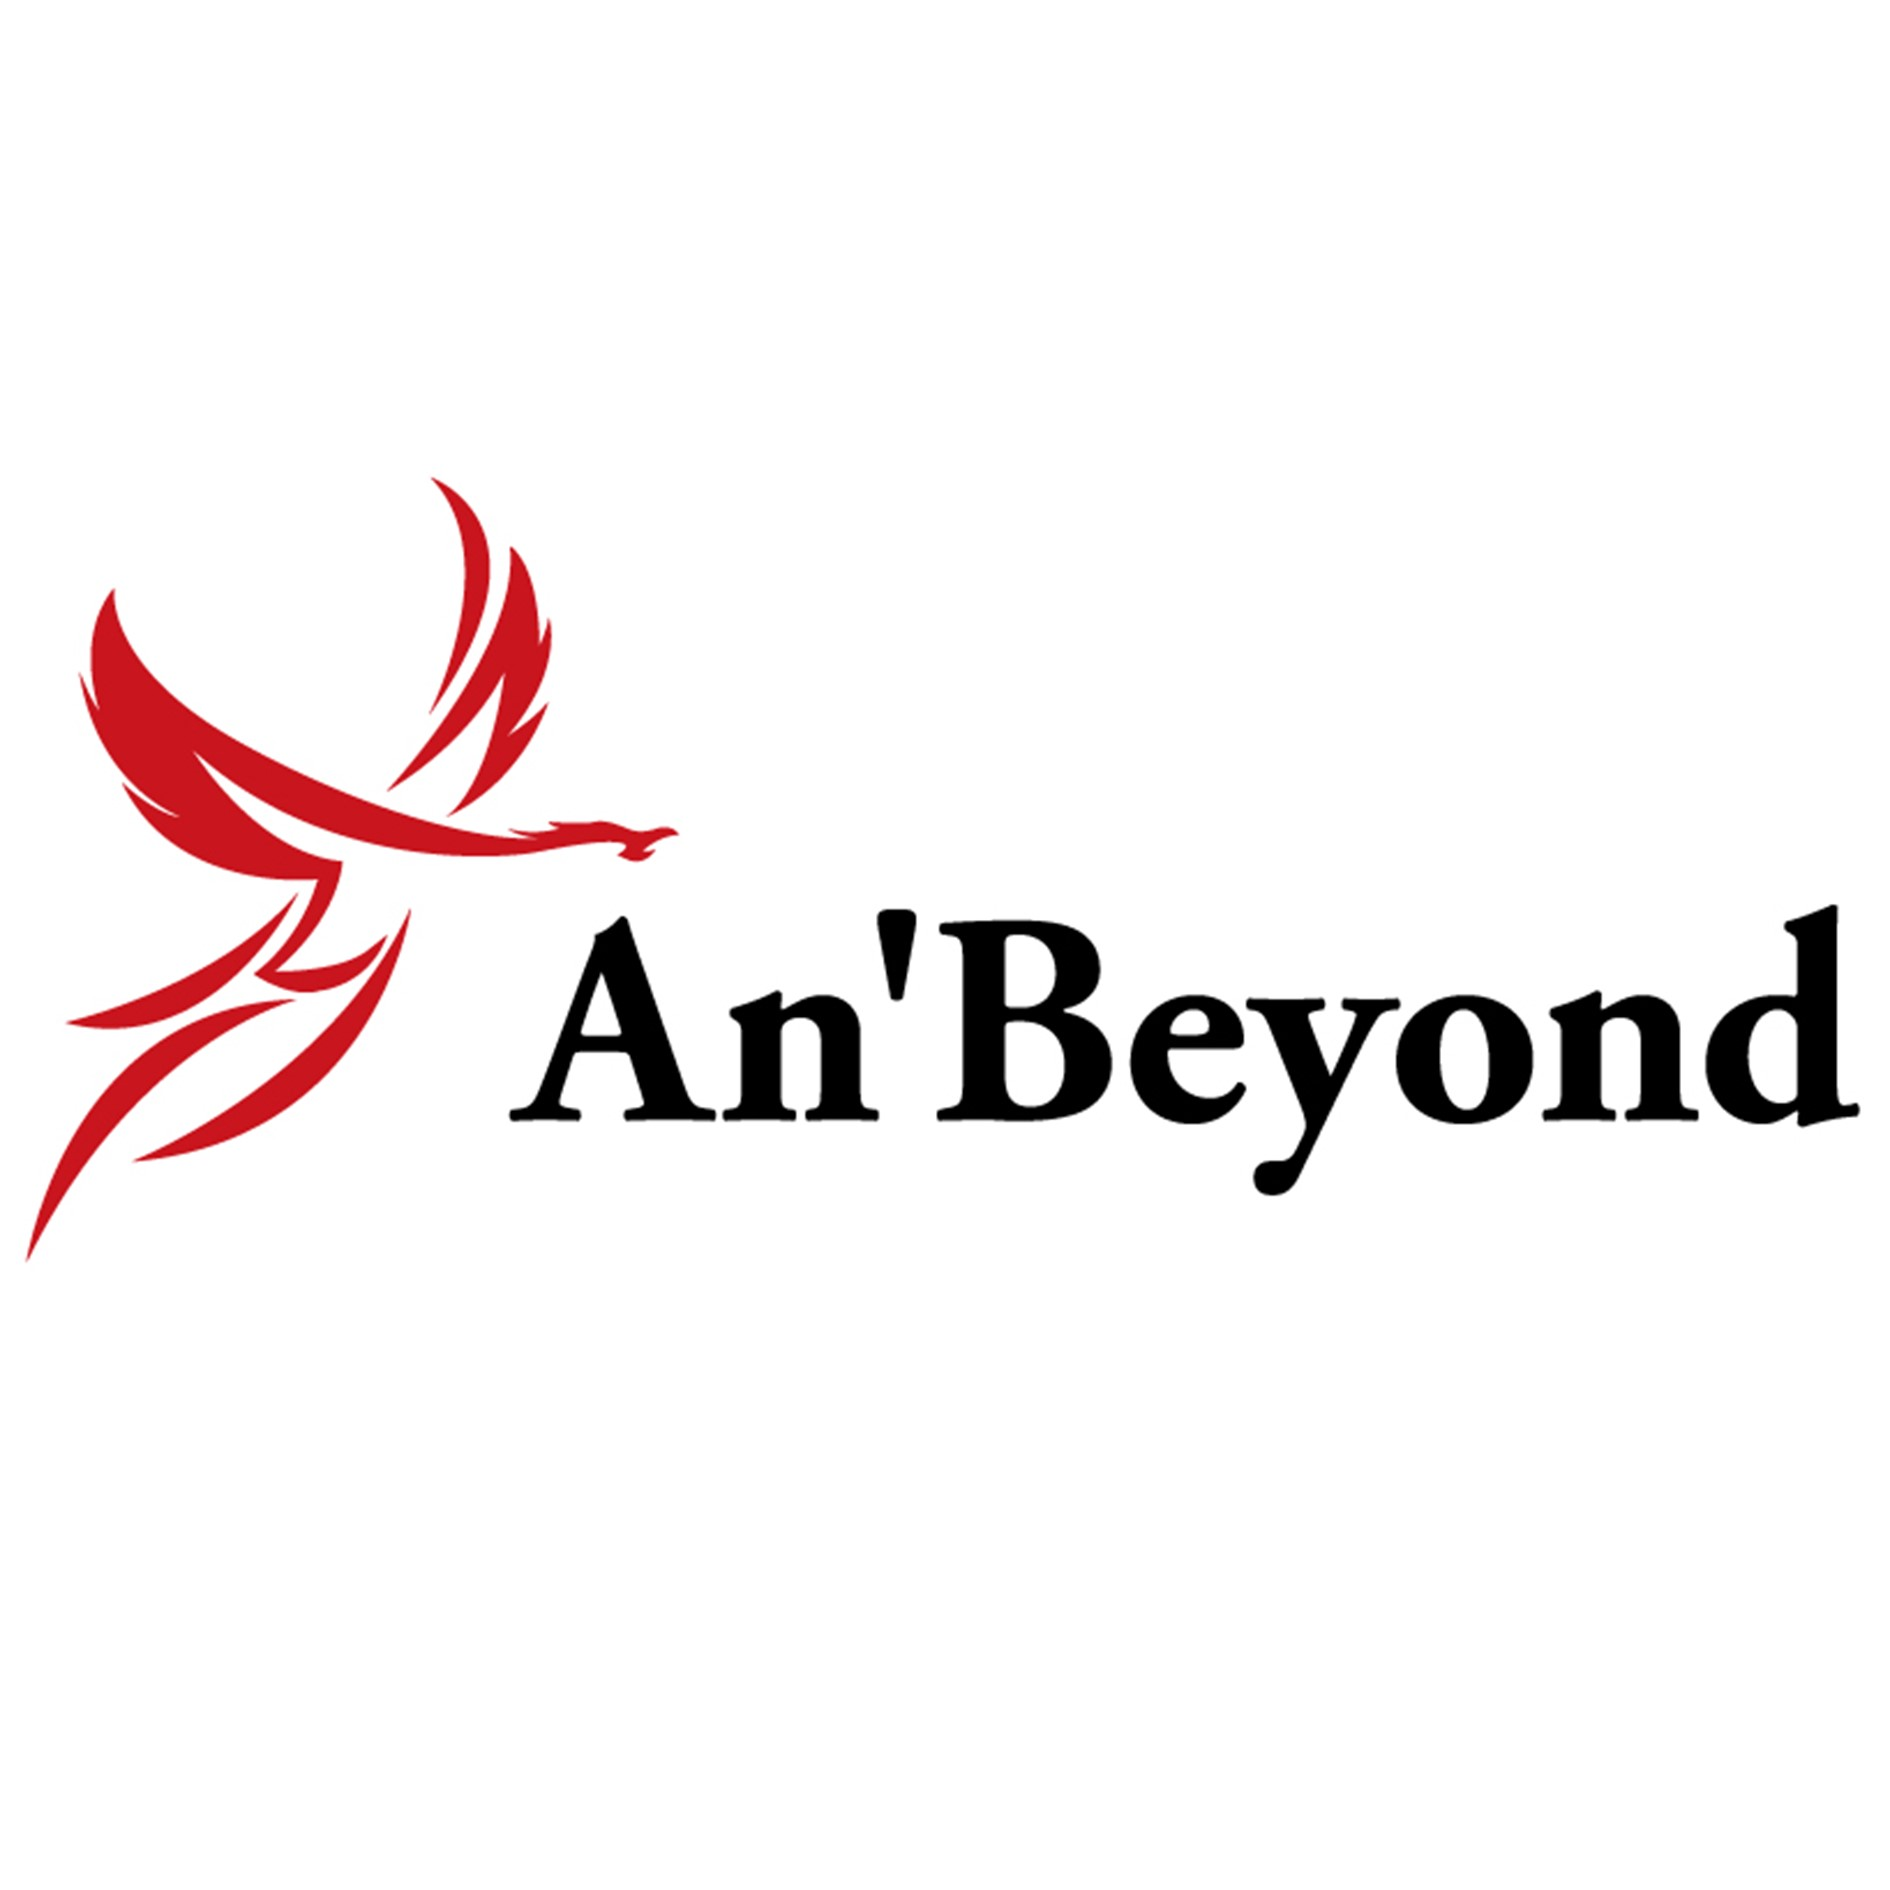 An'Beyond&nbspHoldings&nbspLimited